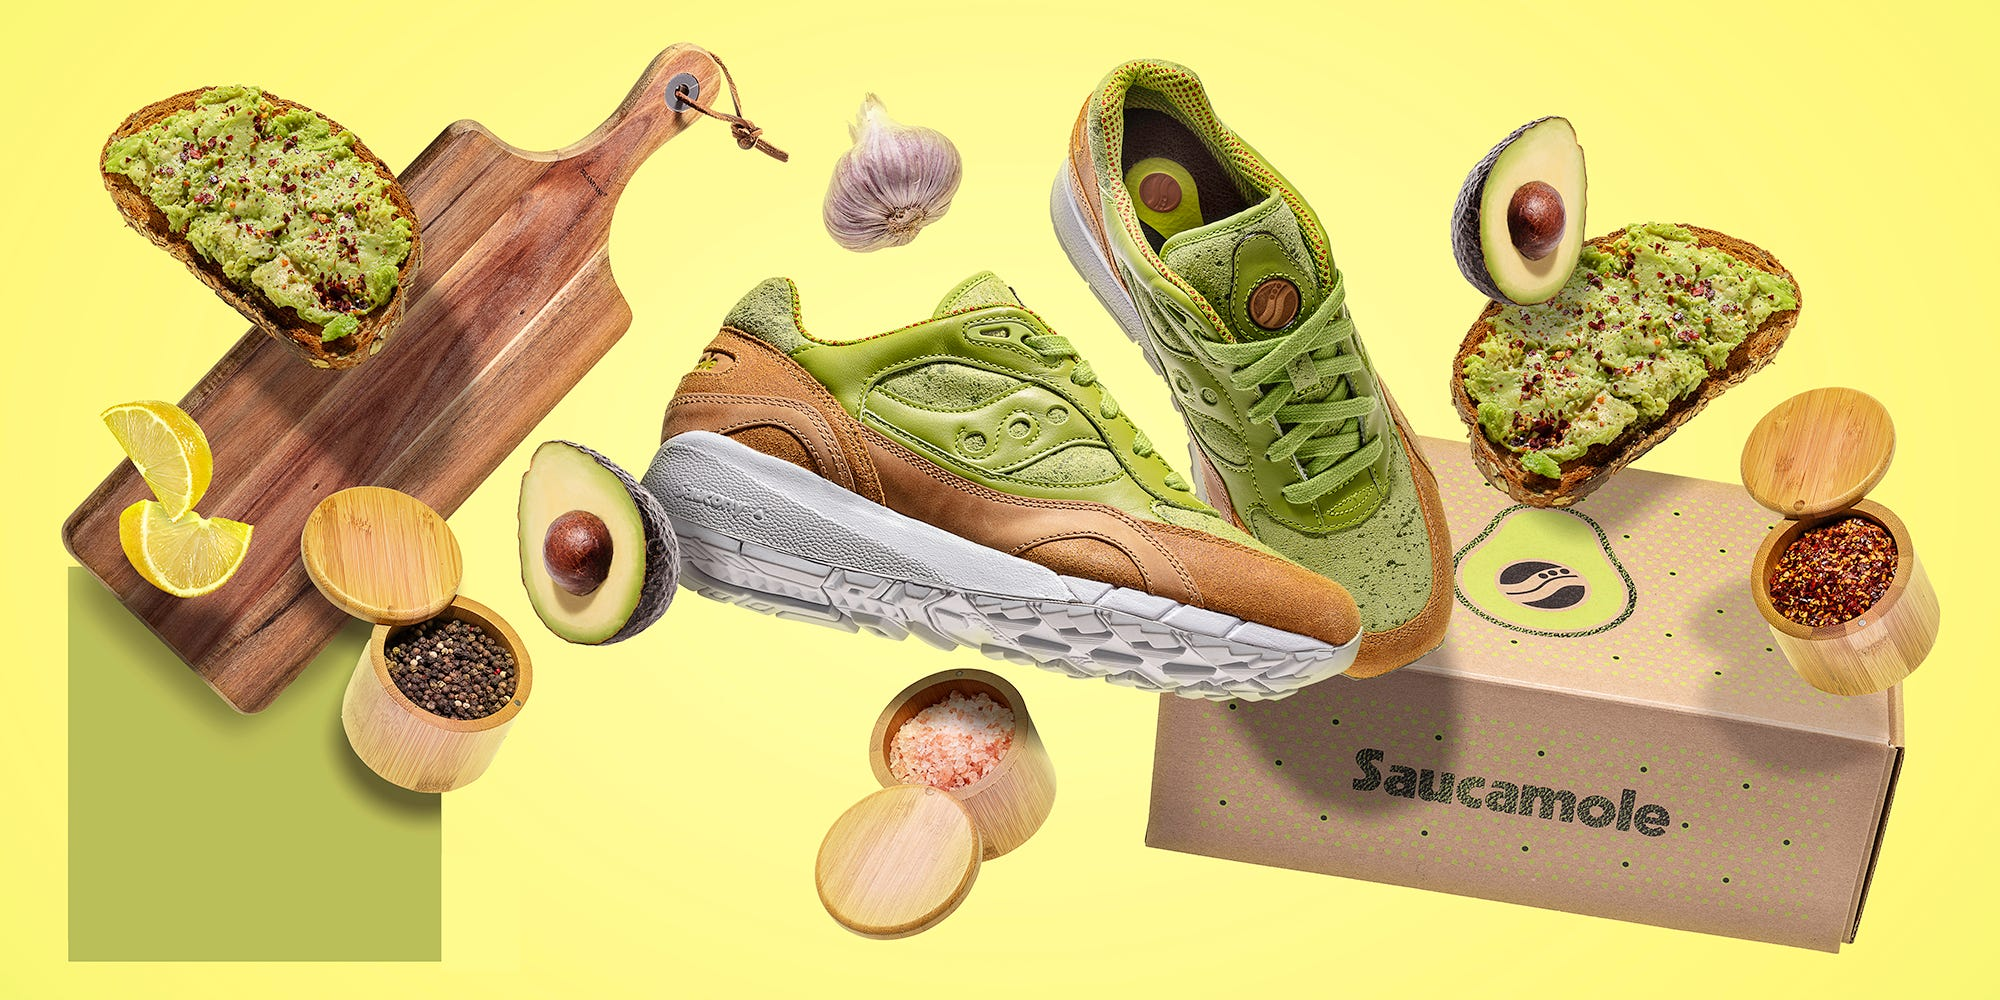 Avocado toast sneakers are a thing